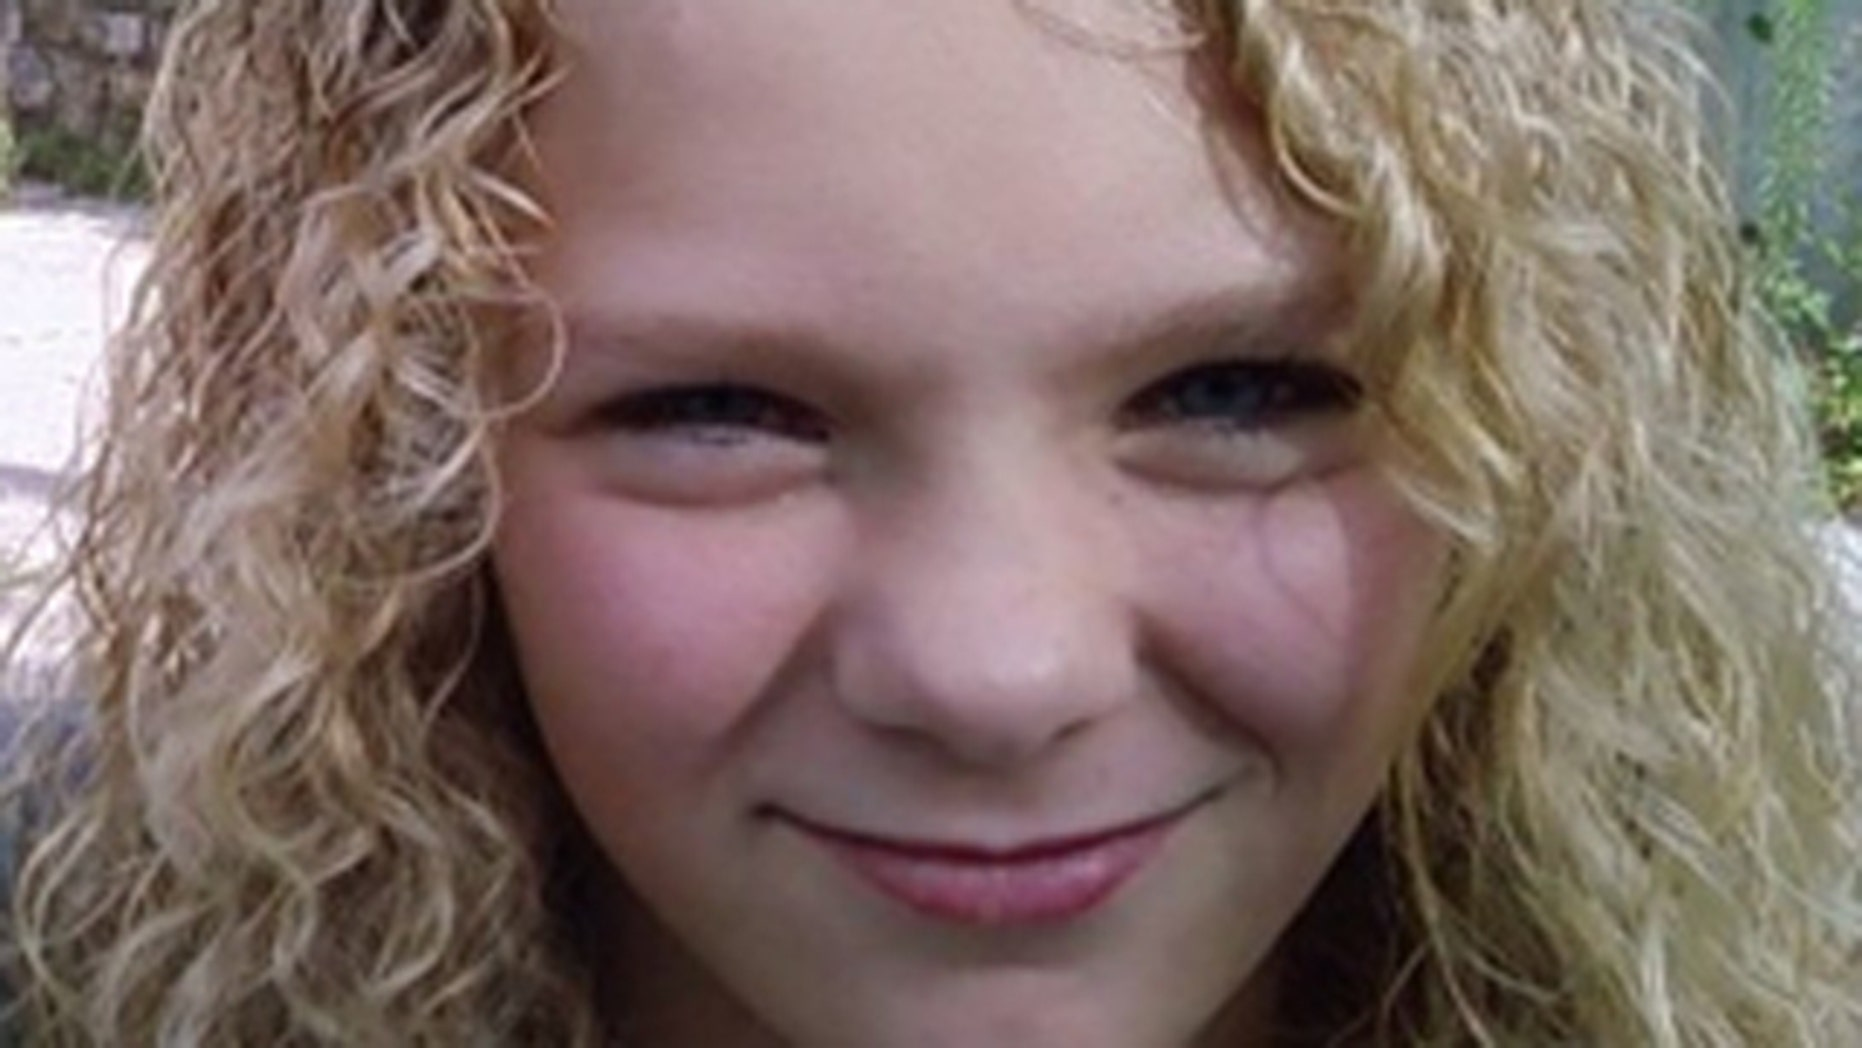 Taylor Dittmar, 13, has been missing since Wednesday.